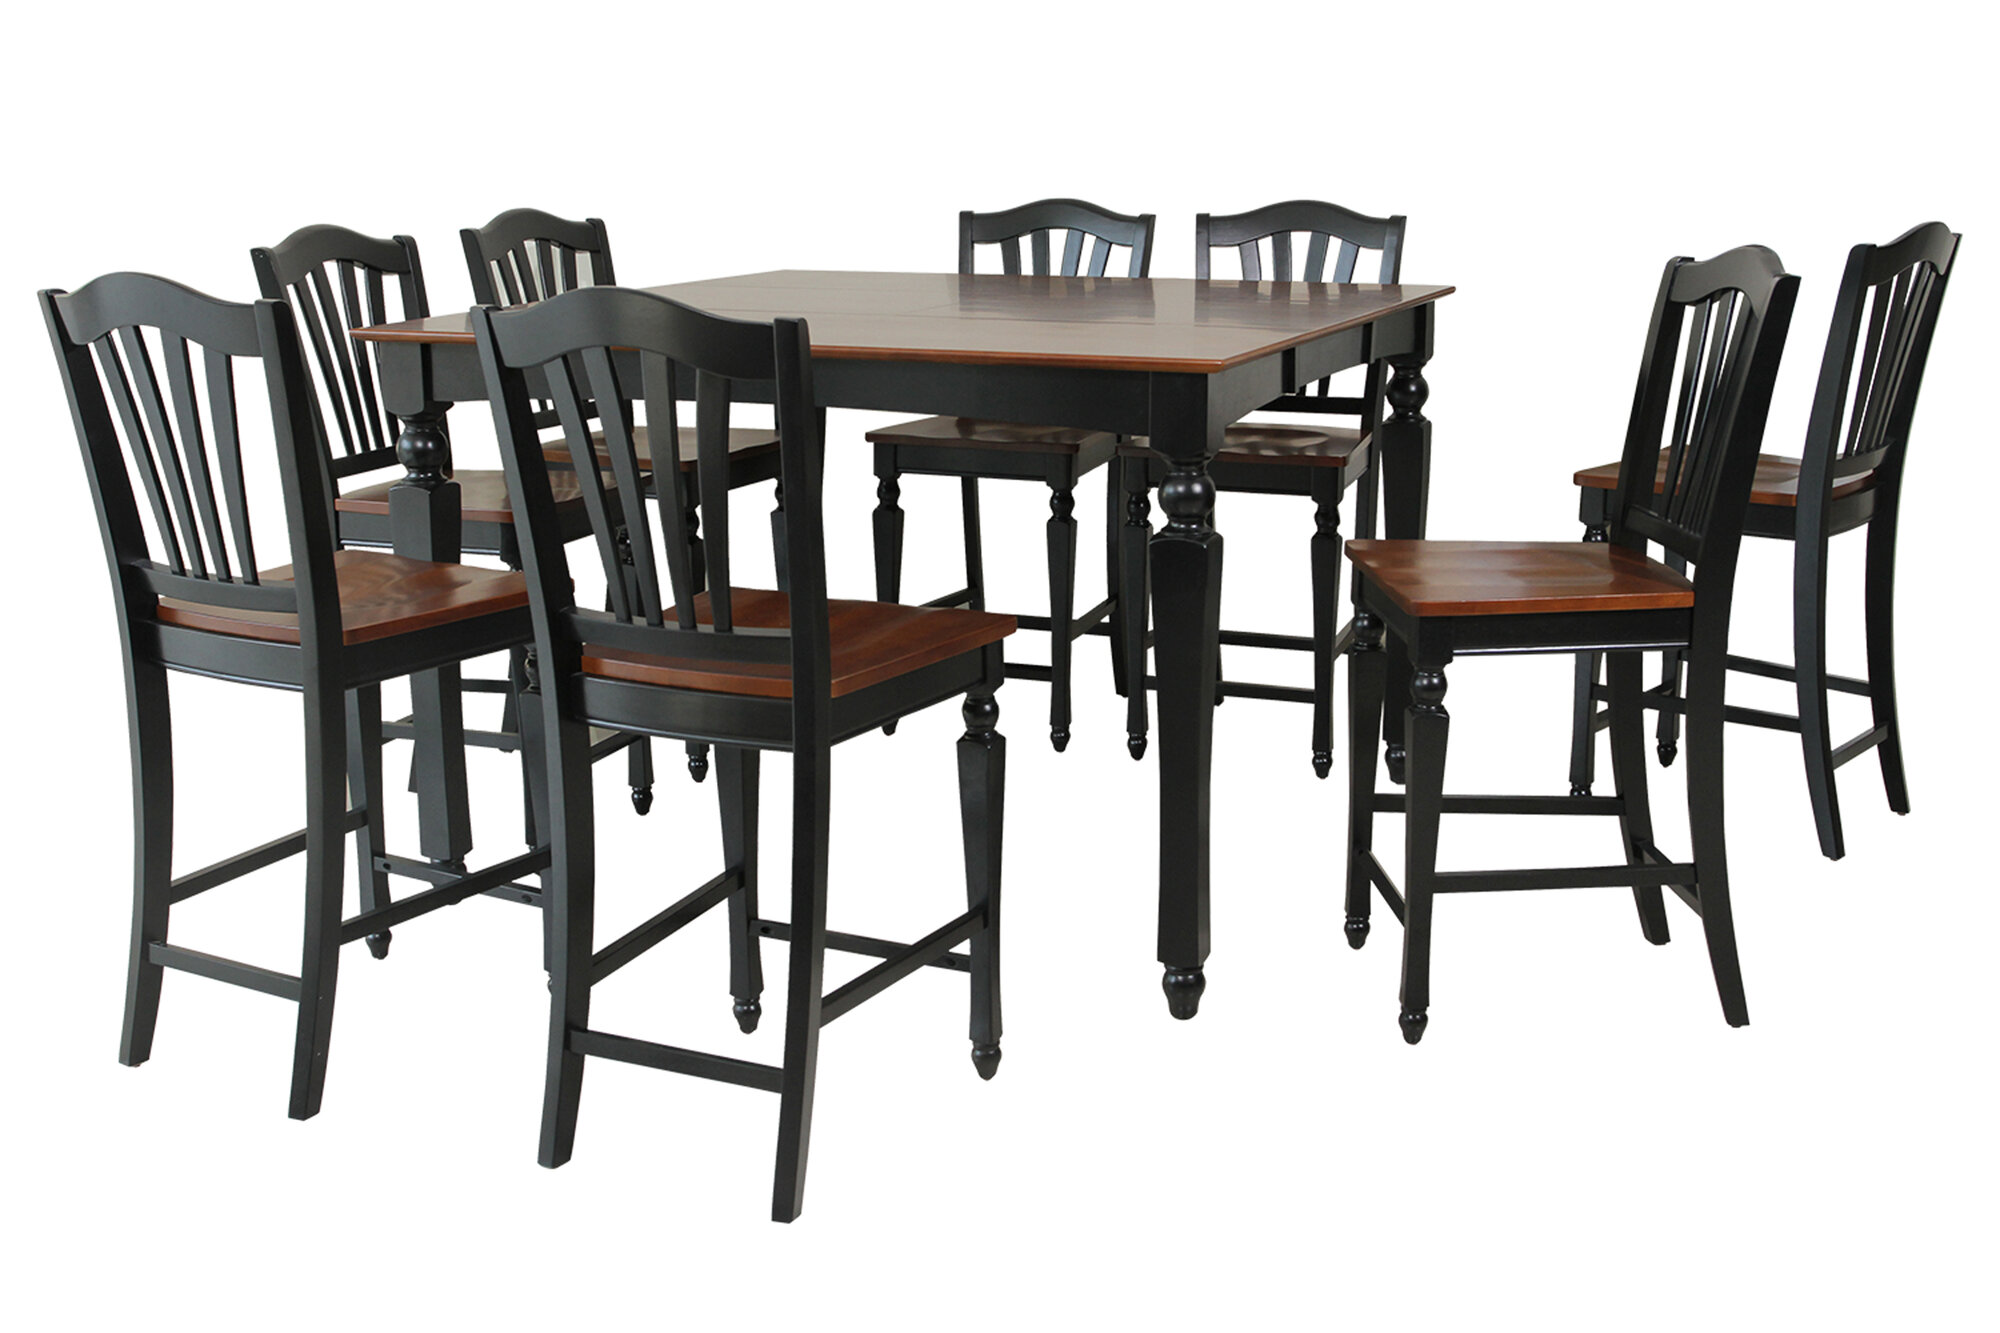 details about ttp furnish onoway 9 piece counter height dining set